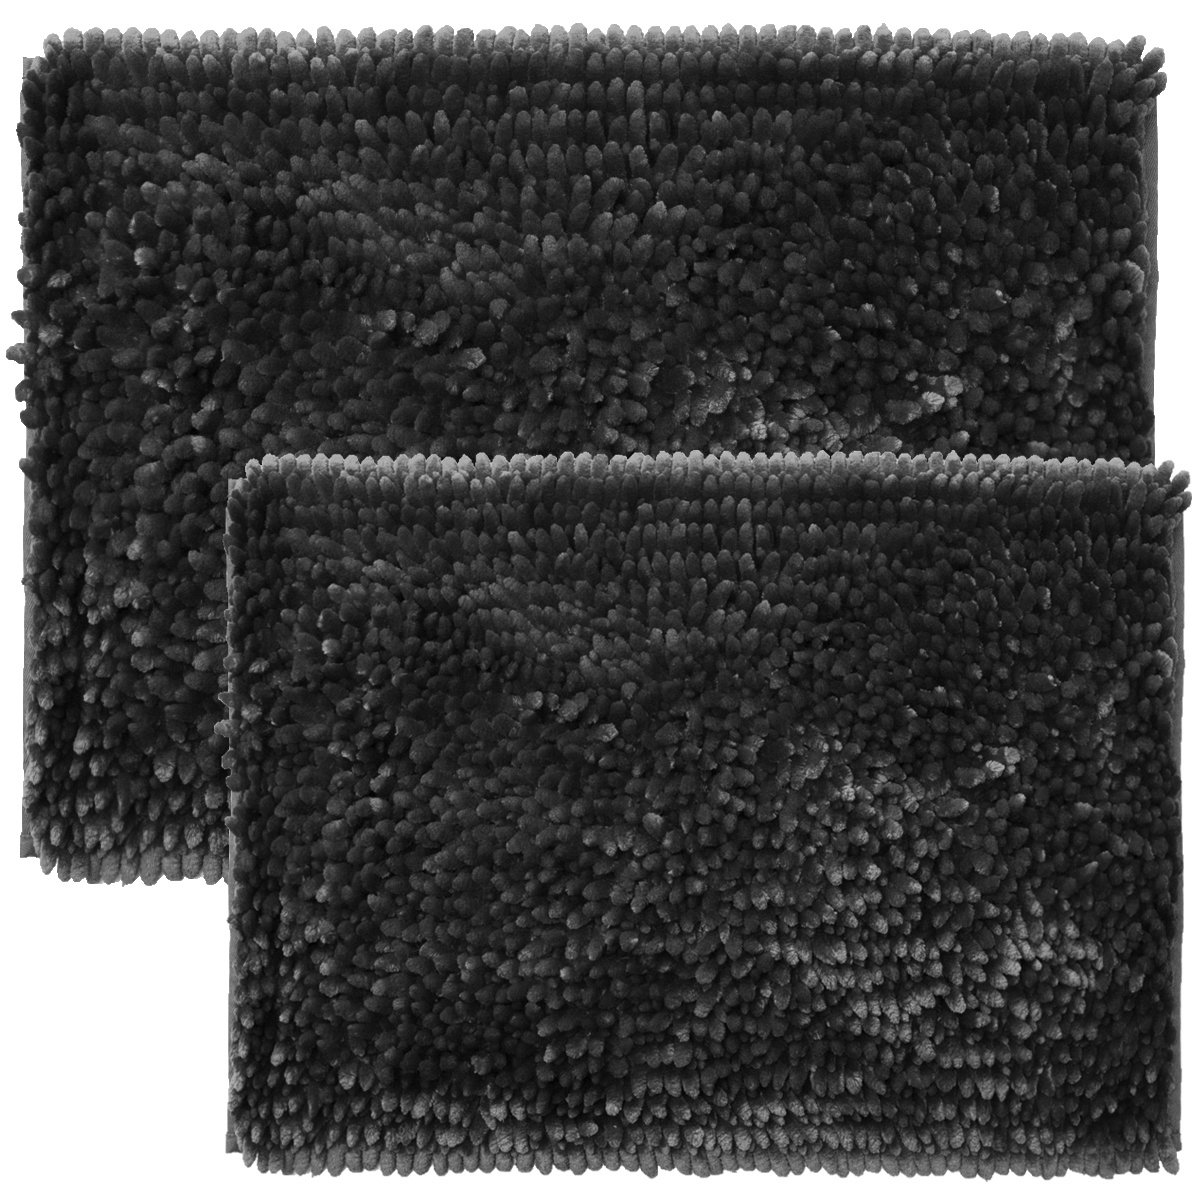 Sweet Home Collection Chenille Noodle 2 Piece Bathroom Rug Set, Charcoal